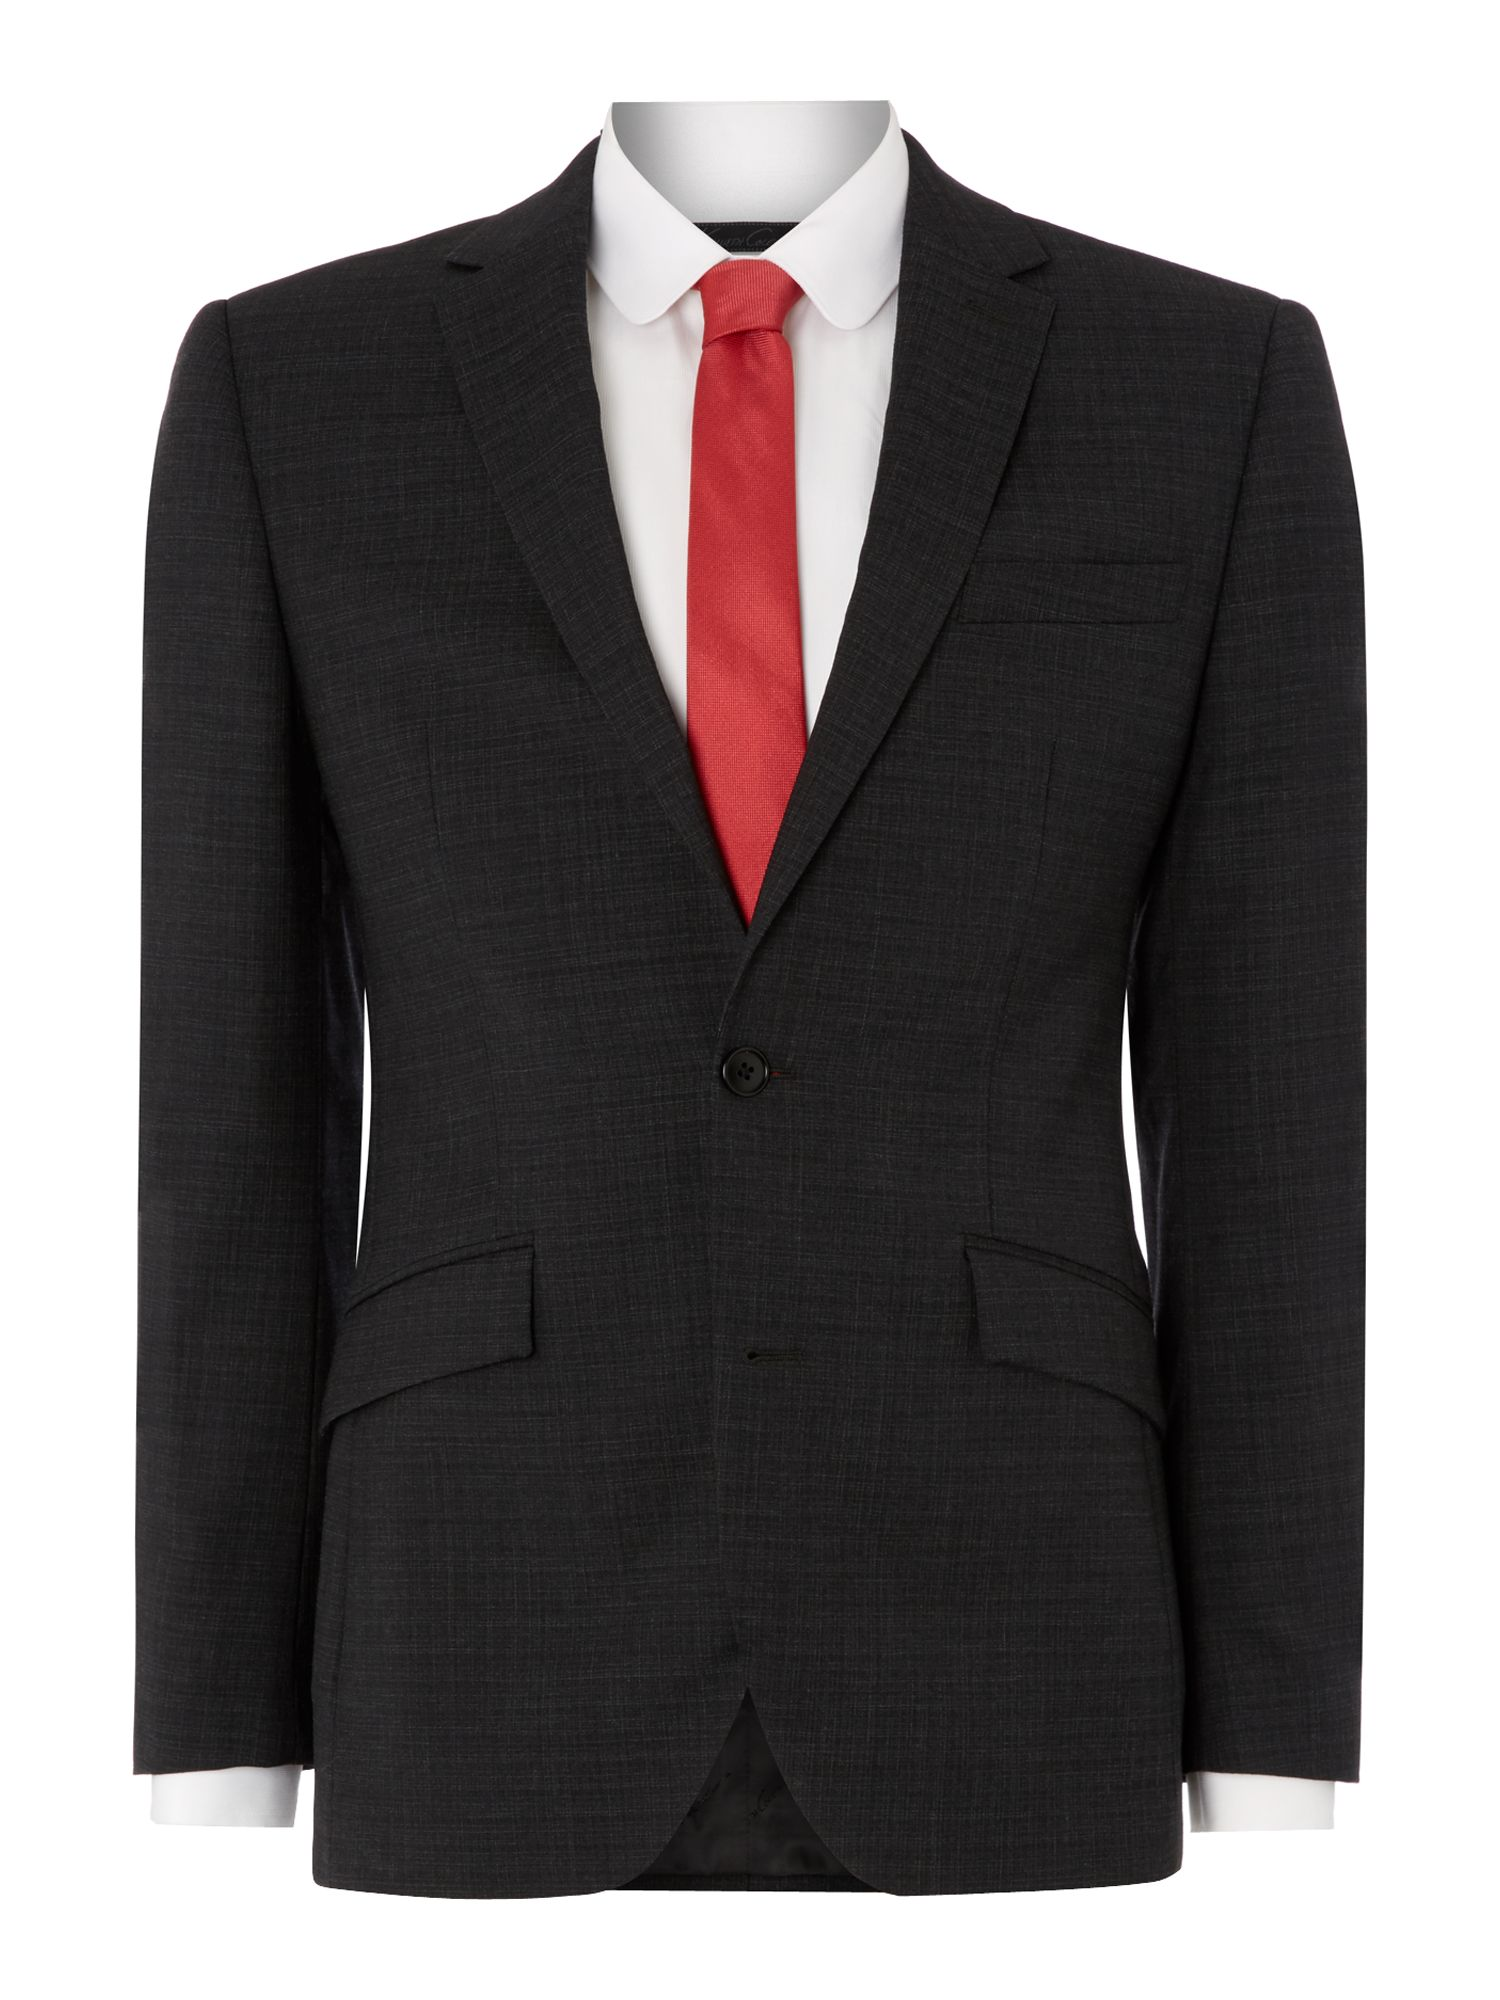 Hamilton Notch Cross Hatch Suit Jacket